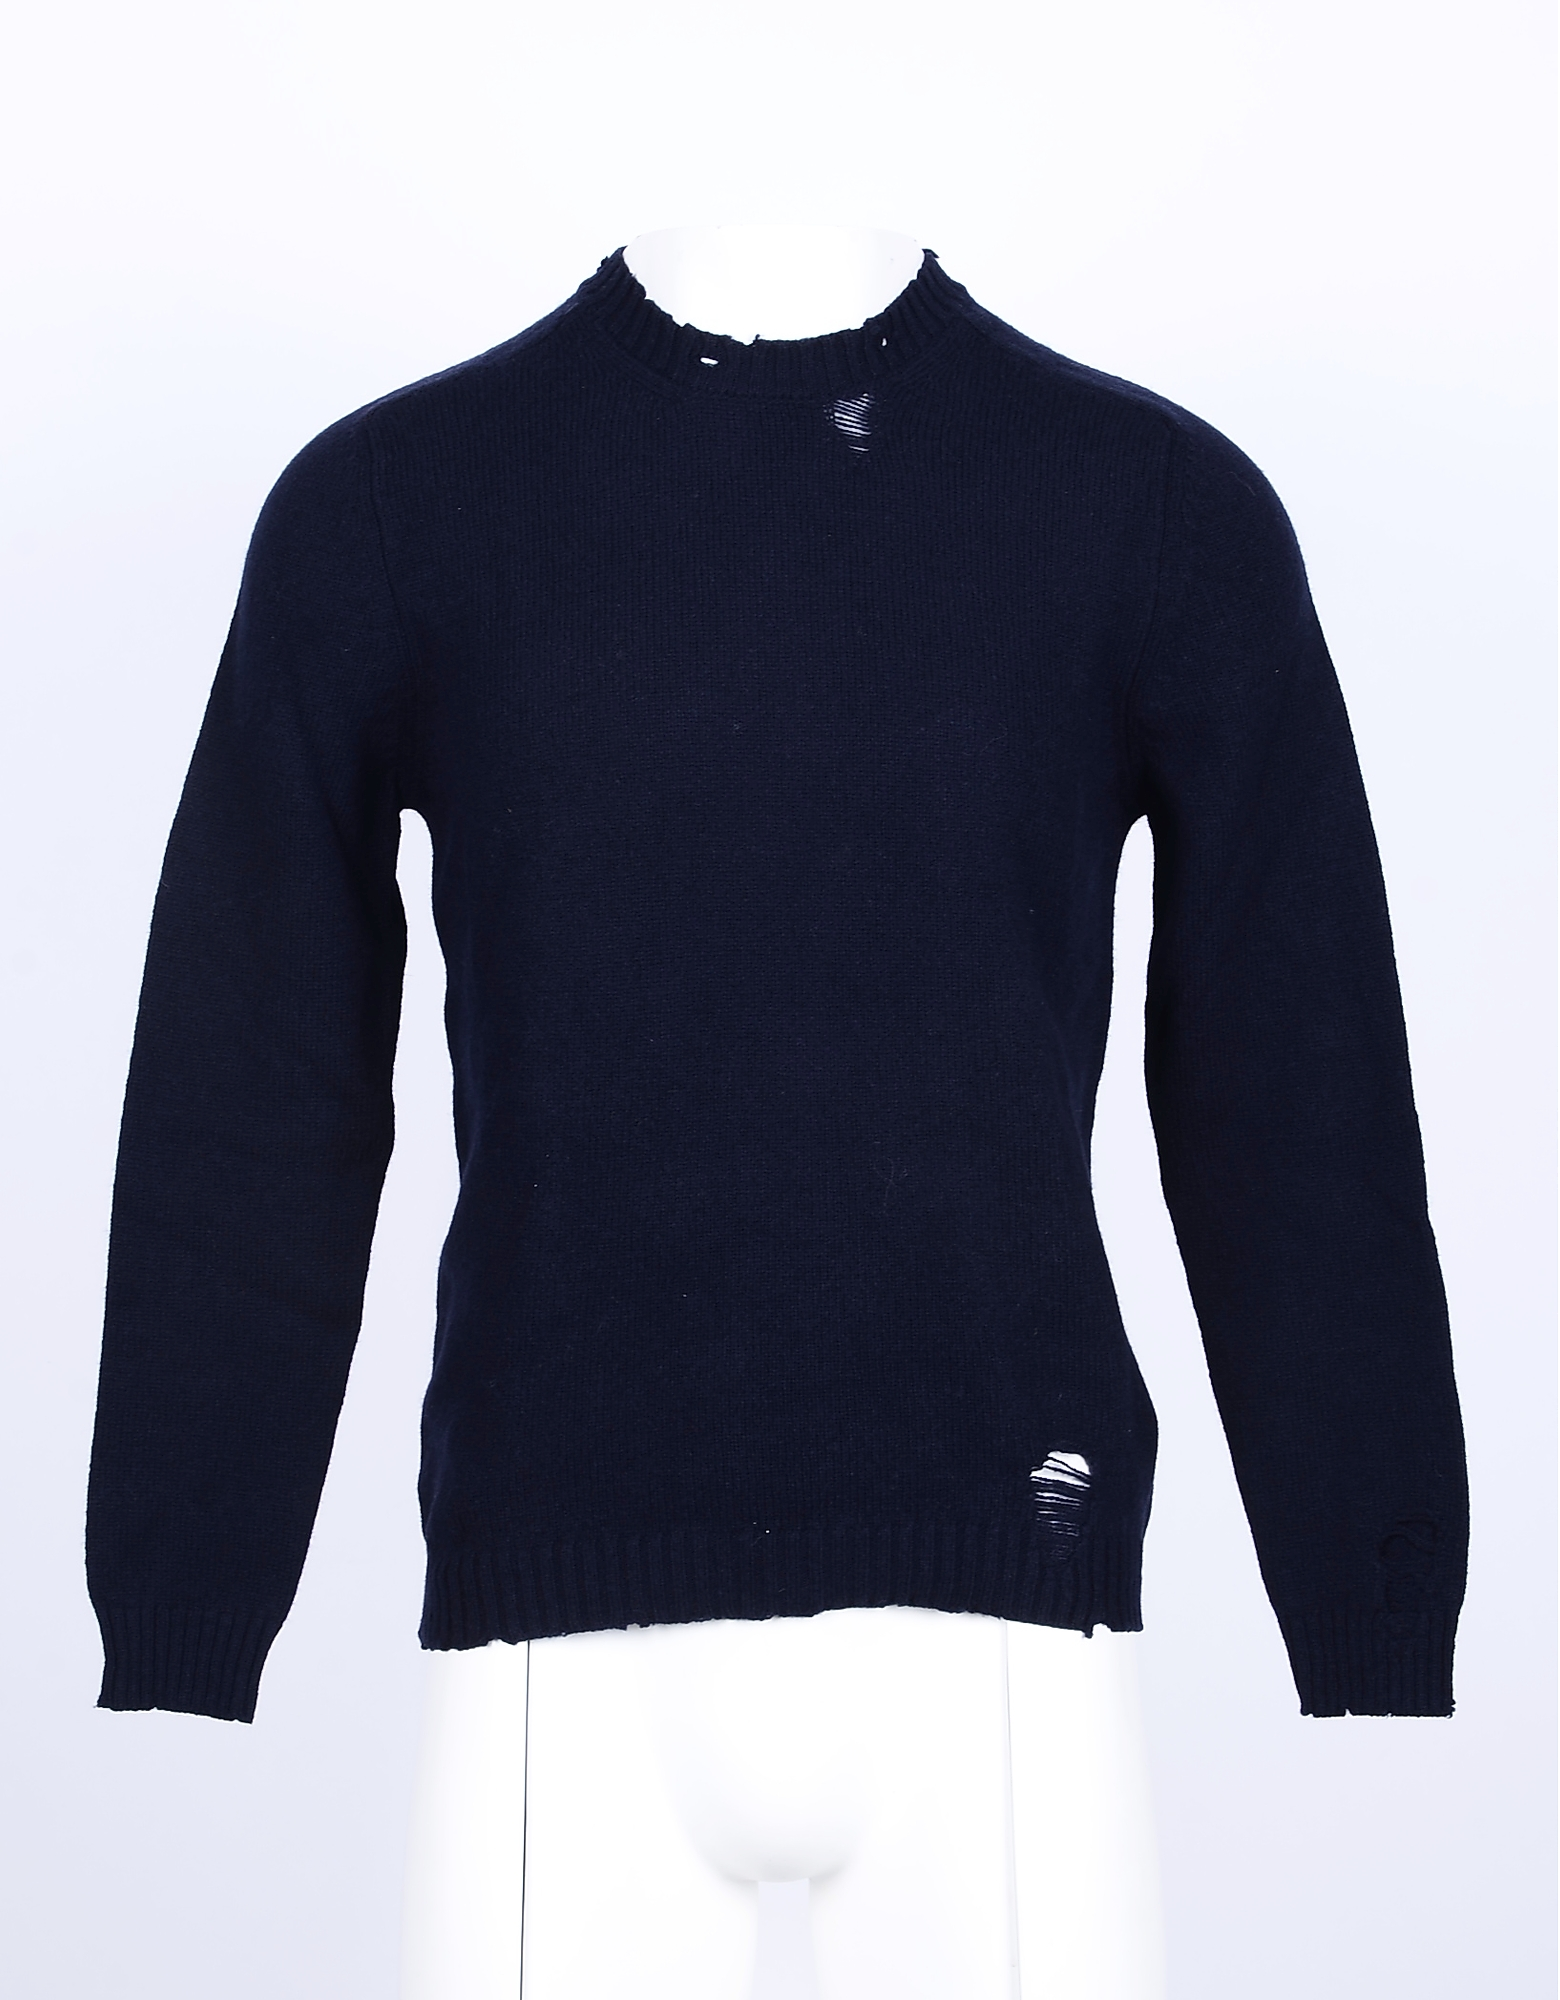 Aglini Designer Knitwear, Blue Distressed Wool and Cashmere Men's Sweater